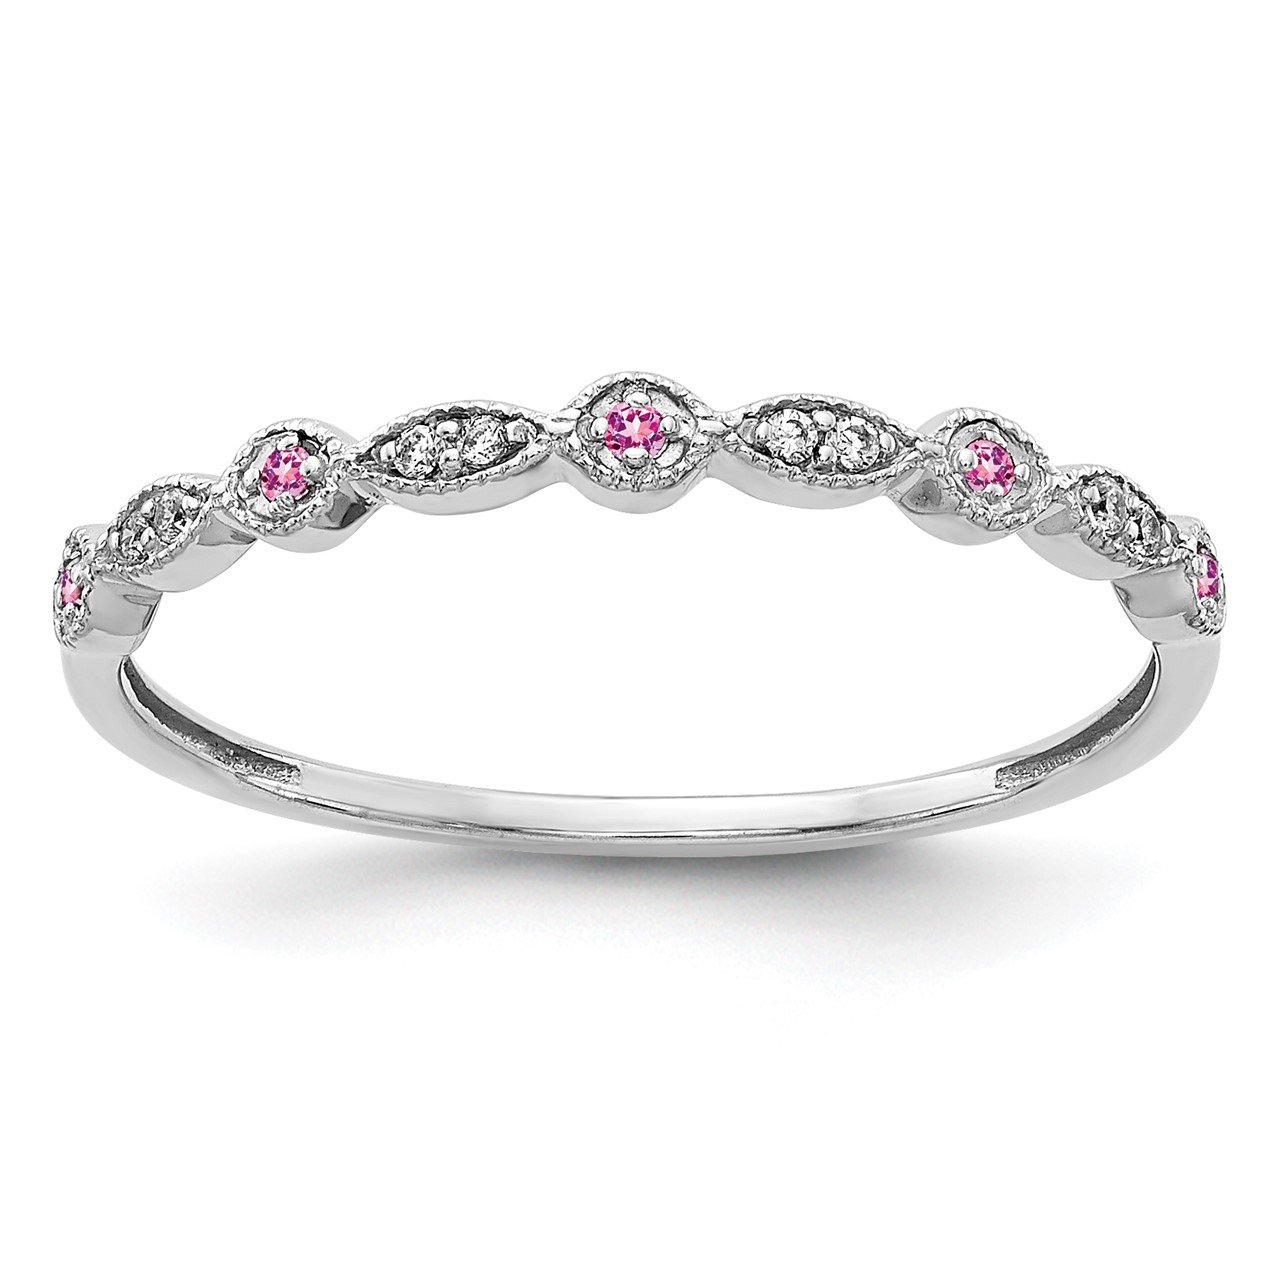 14k White Gold Diamond and Pink Sapphire Fancy Band